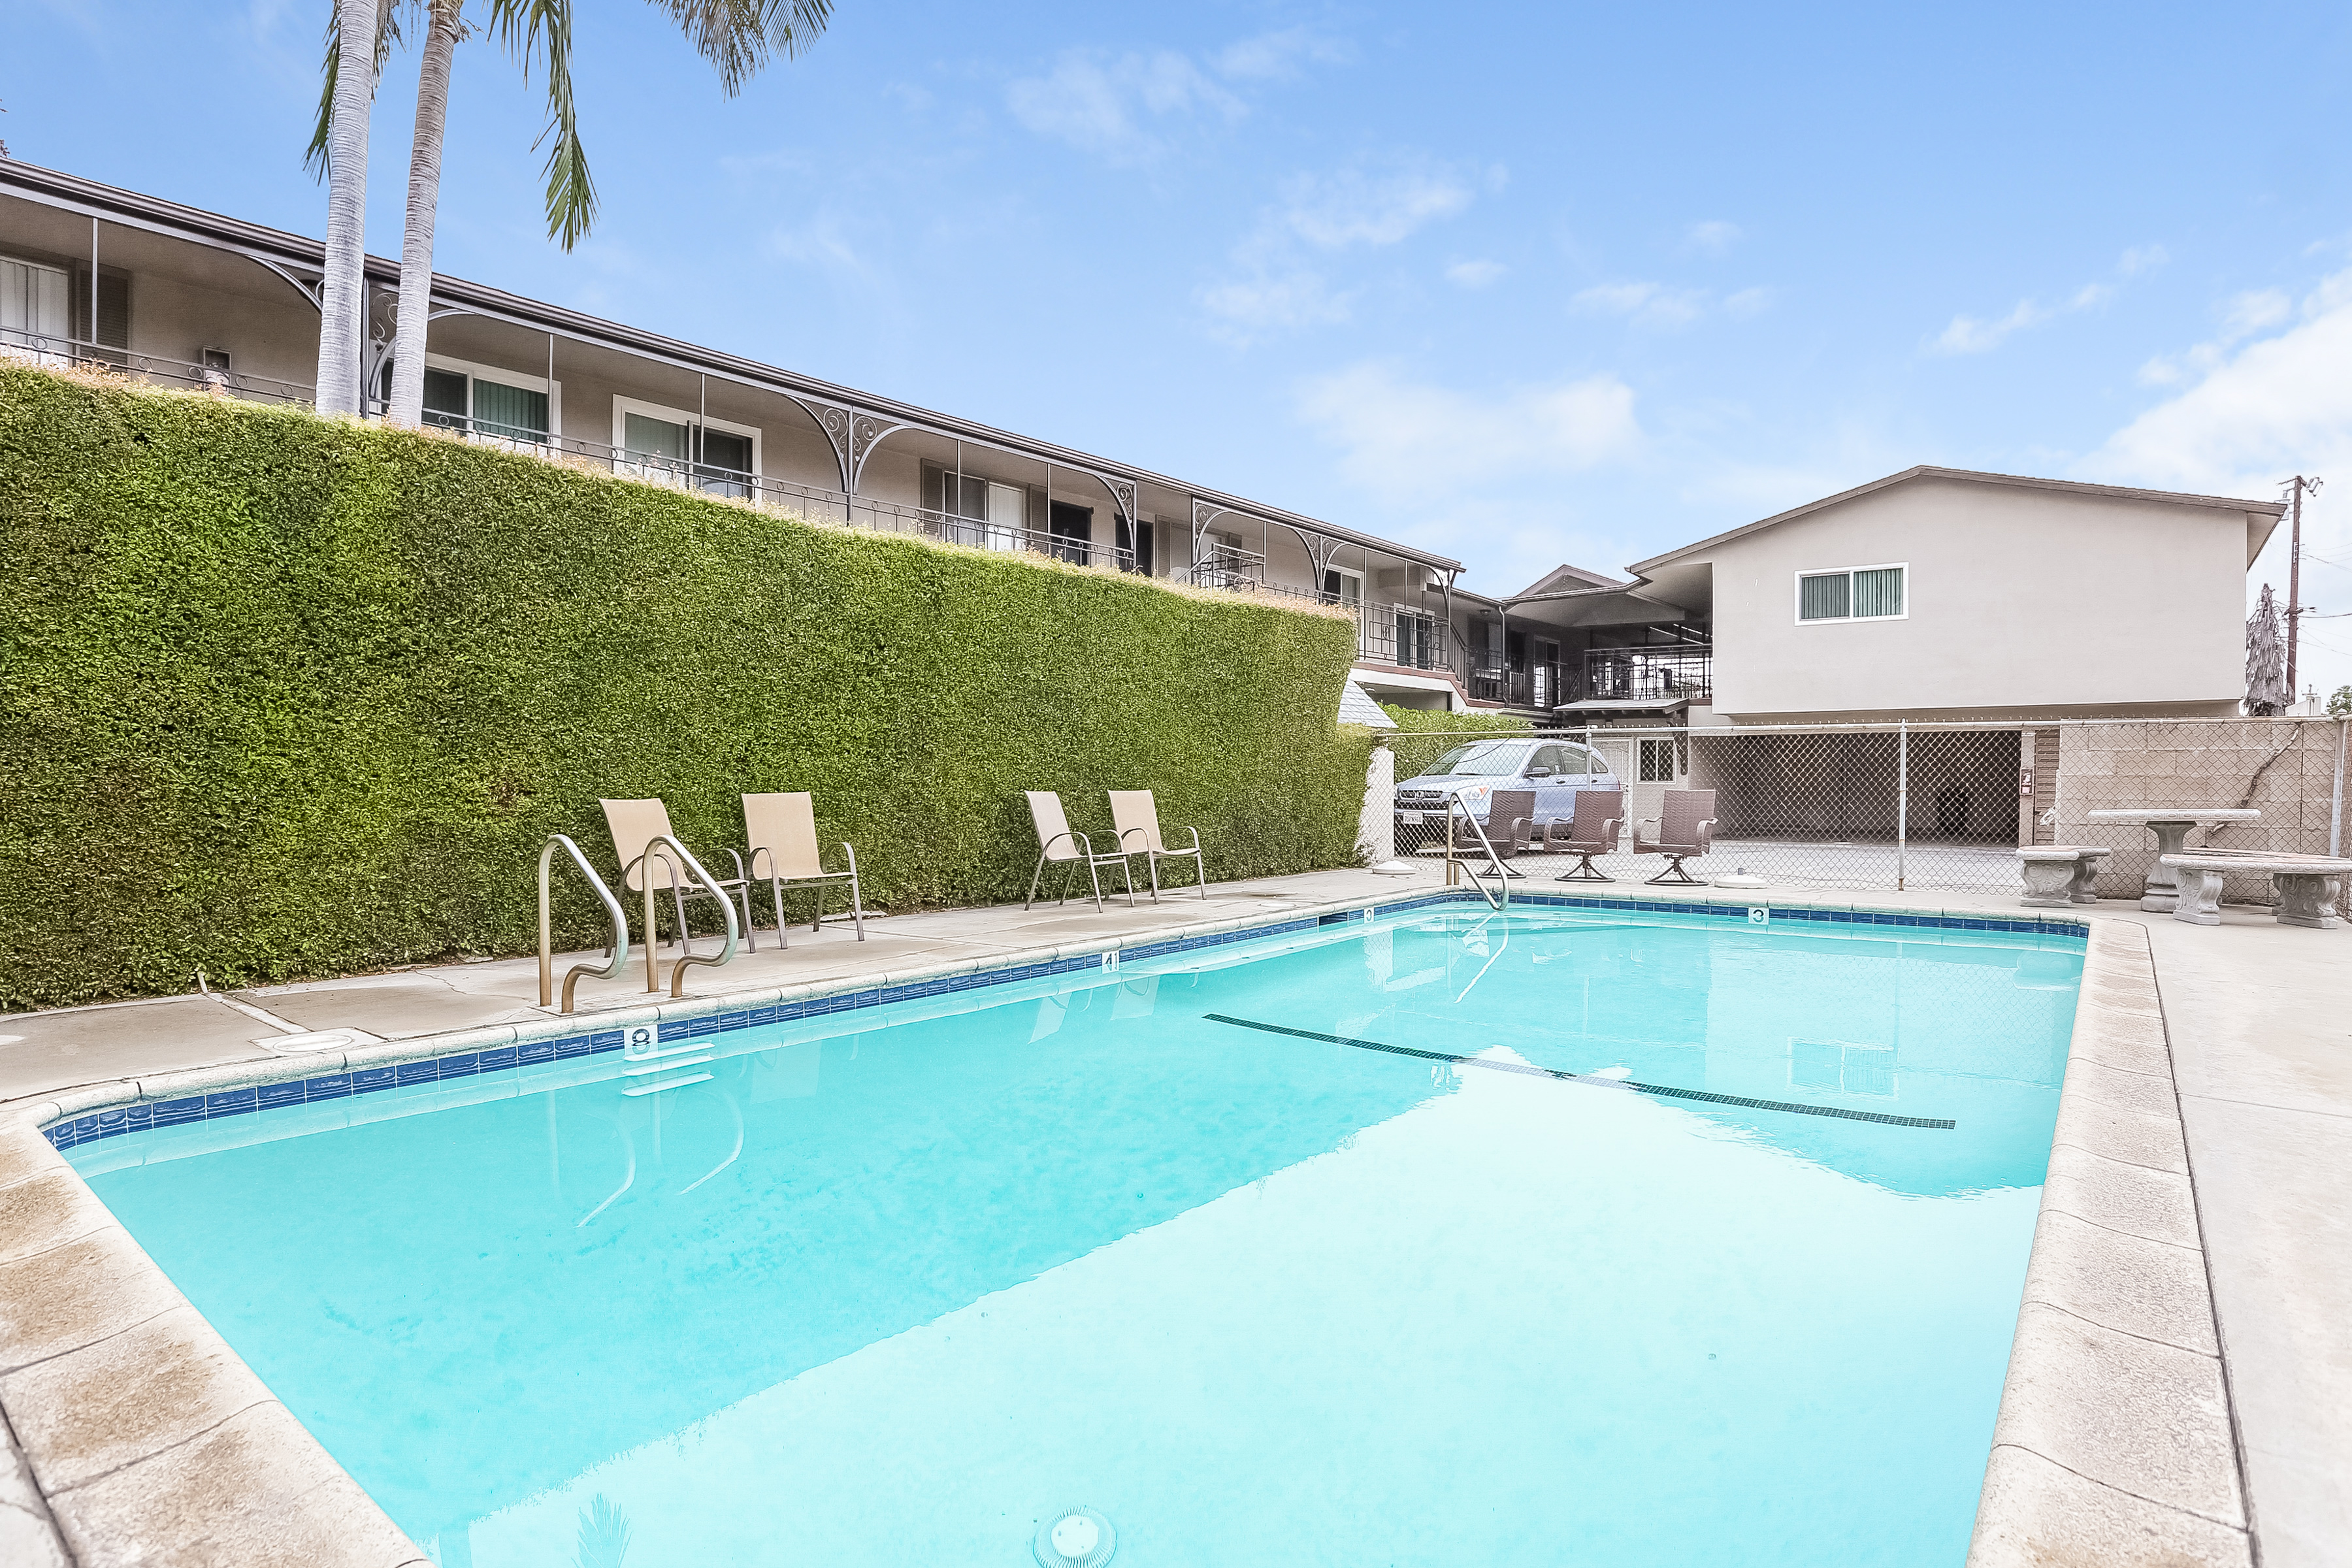 2 Bdrm 1 Bath Oleander Court Apartments Barbera